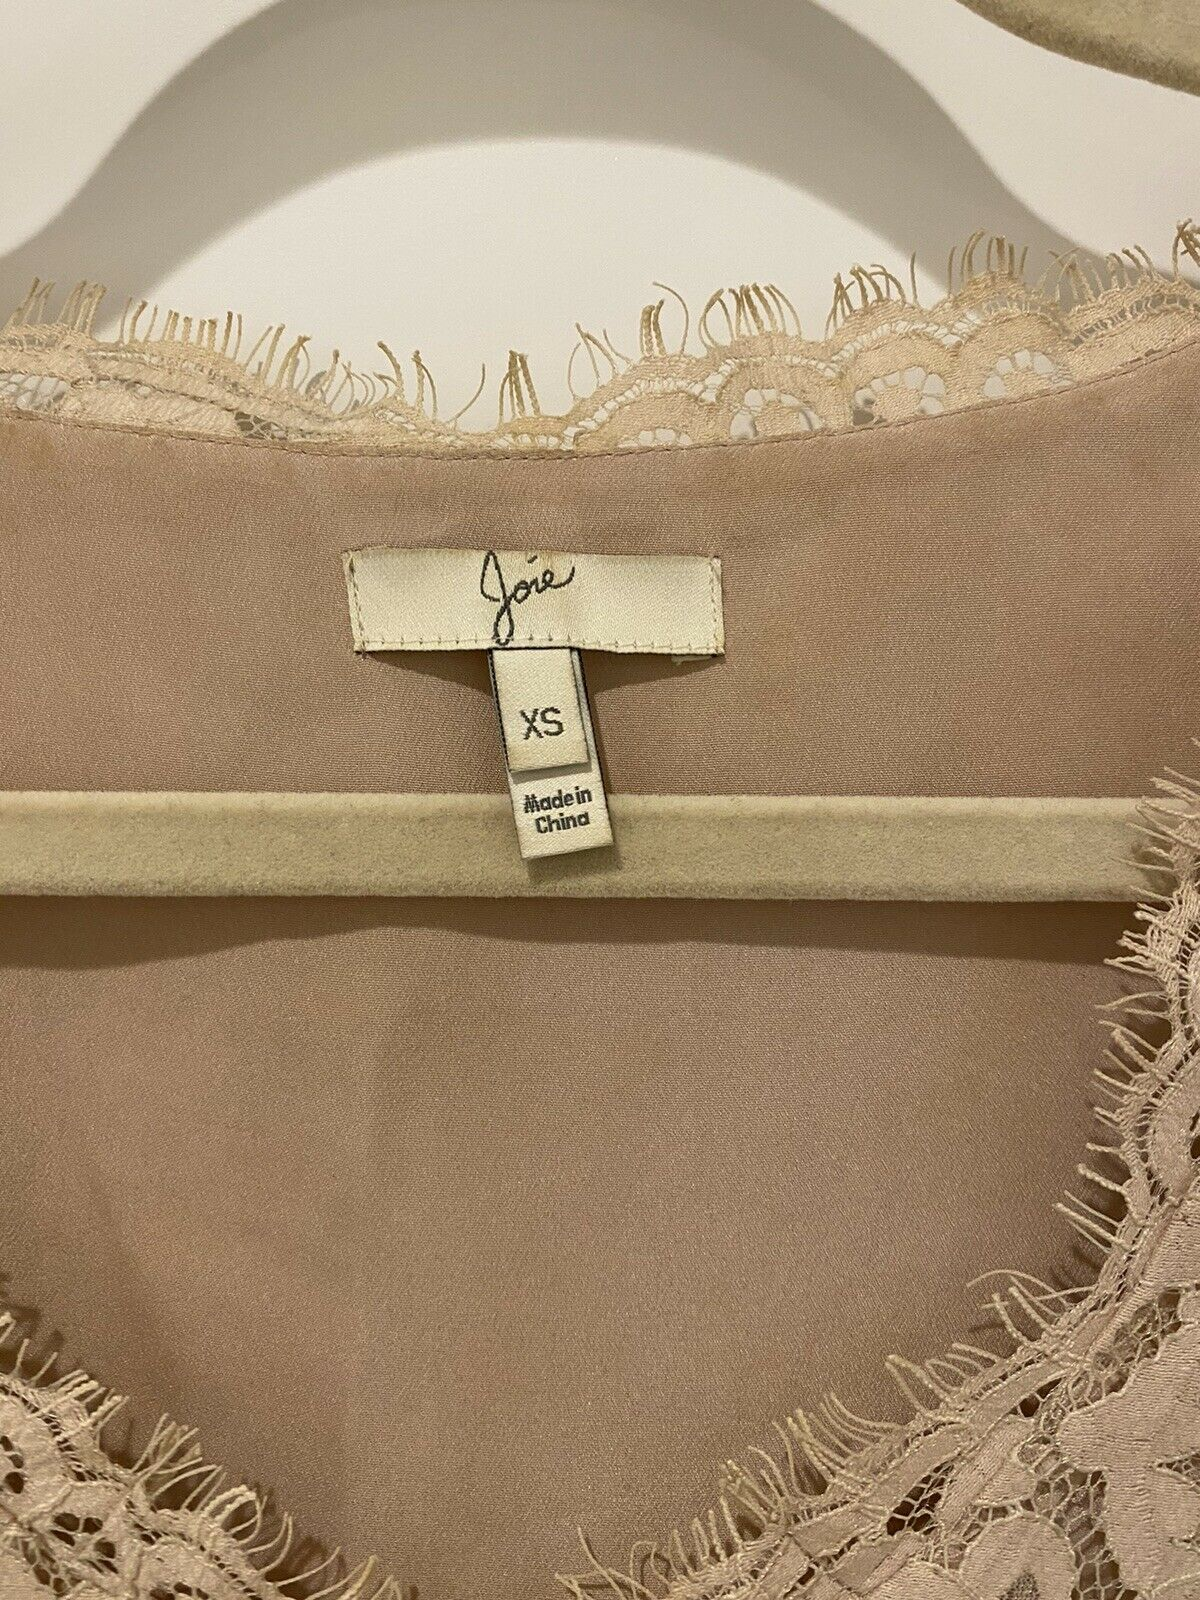 Joie dusty pink Lace Tank Top - image 3